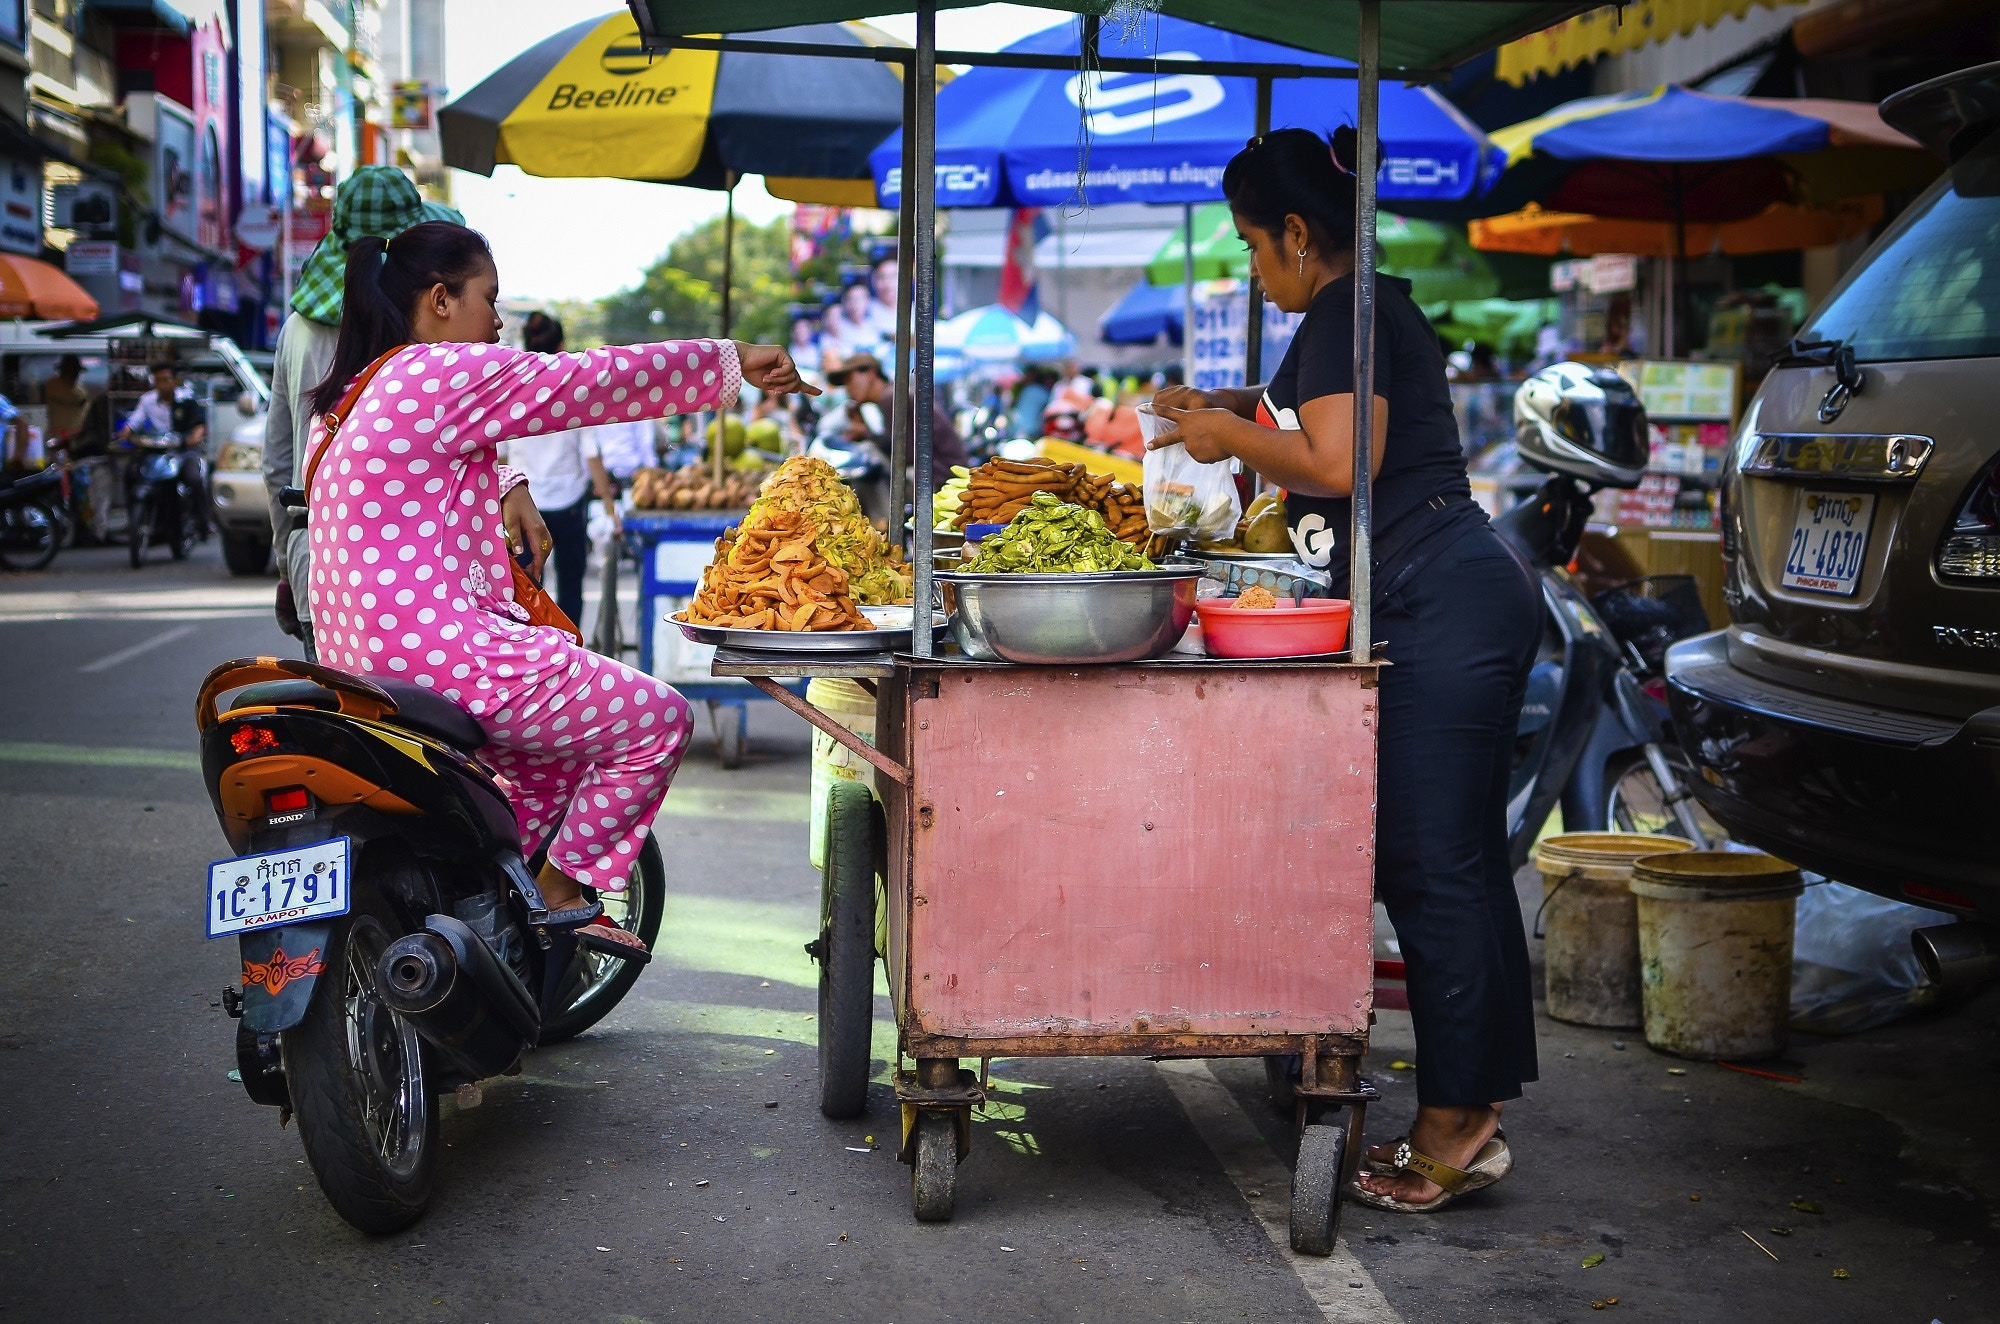 A woman on a motorbike orders snacks from a street food stall in Phnom Penh, Cambodia